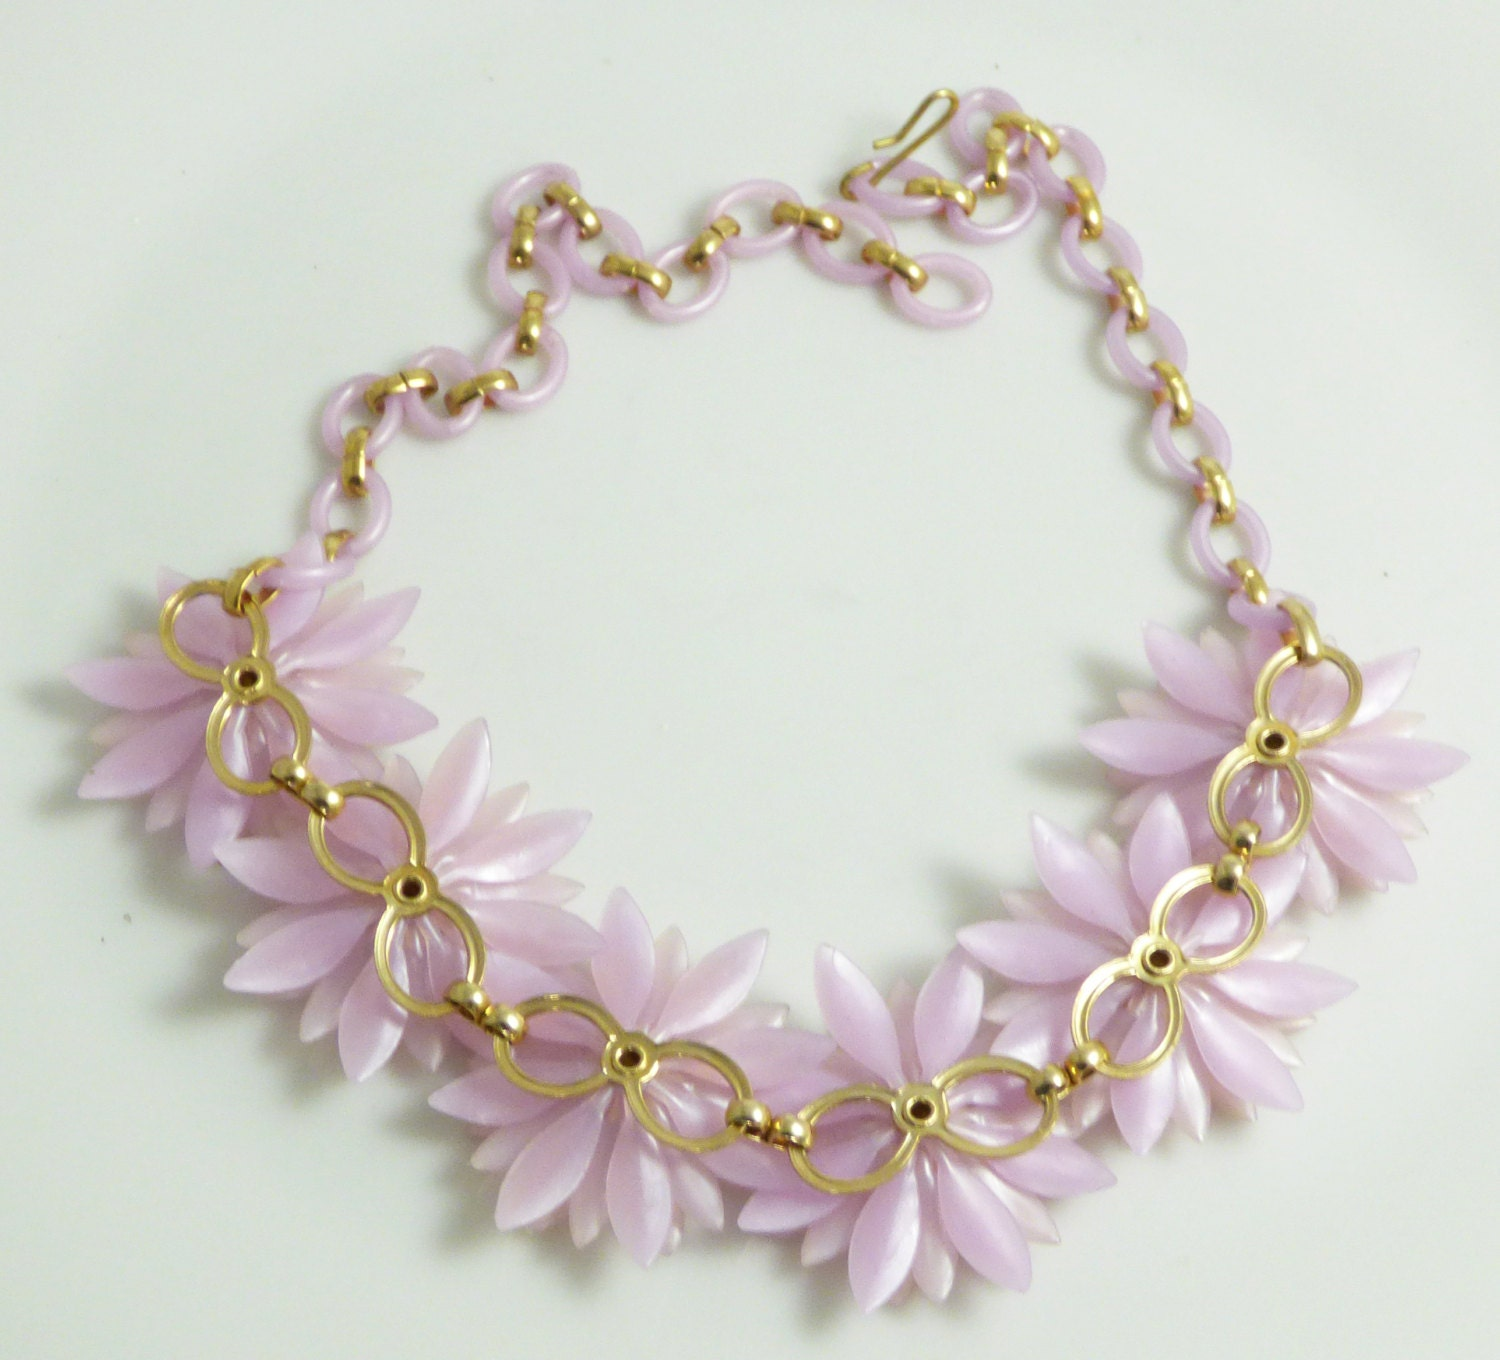 Vintage Coro Soft Plastic Flower Necklace AB By